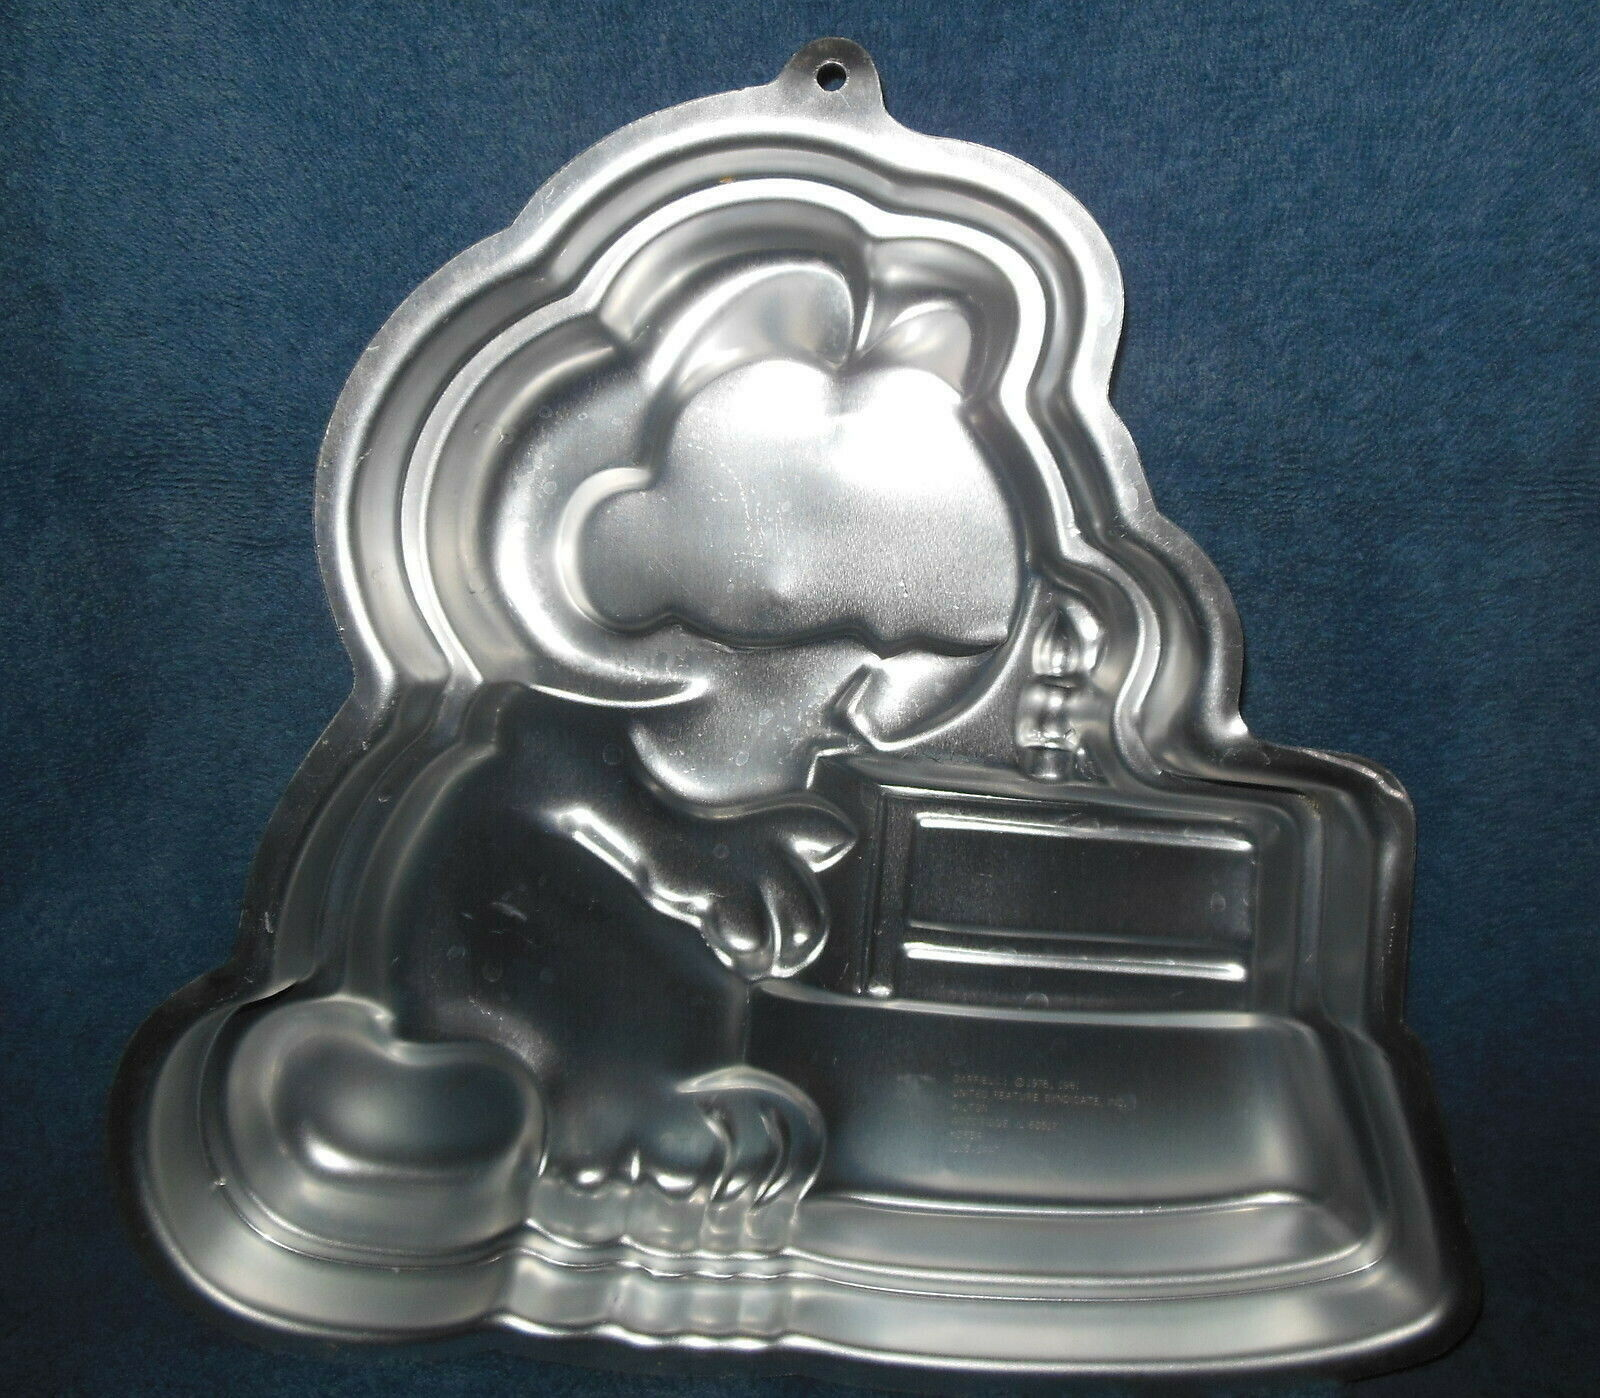 Primary image for WILTON ALUMINUM 'GARFIELD' BITHDAY CAKE WITH CANDLE CAKE PAN OR MOLD 1981